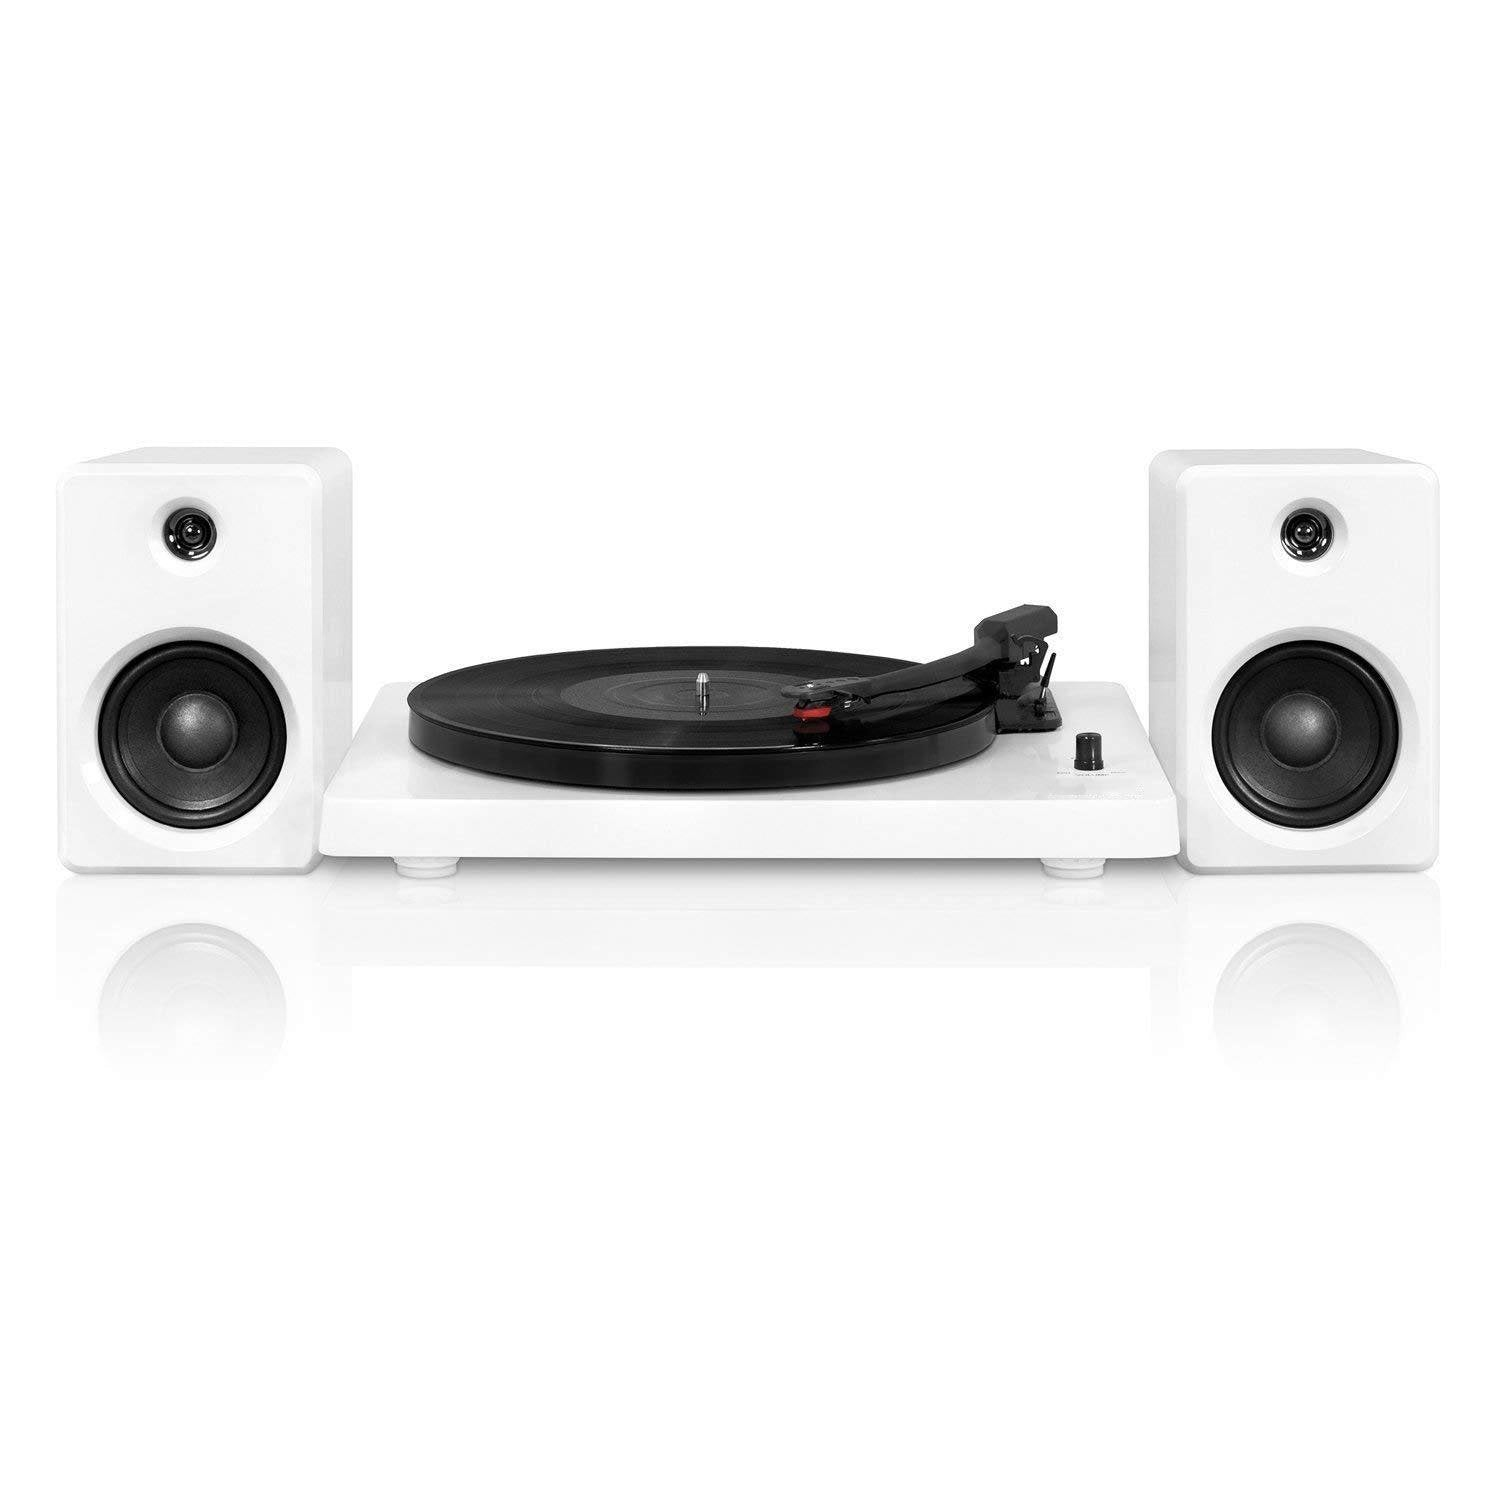 3-Speed Bluetooth Turntable with 50 Watt Speakers